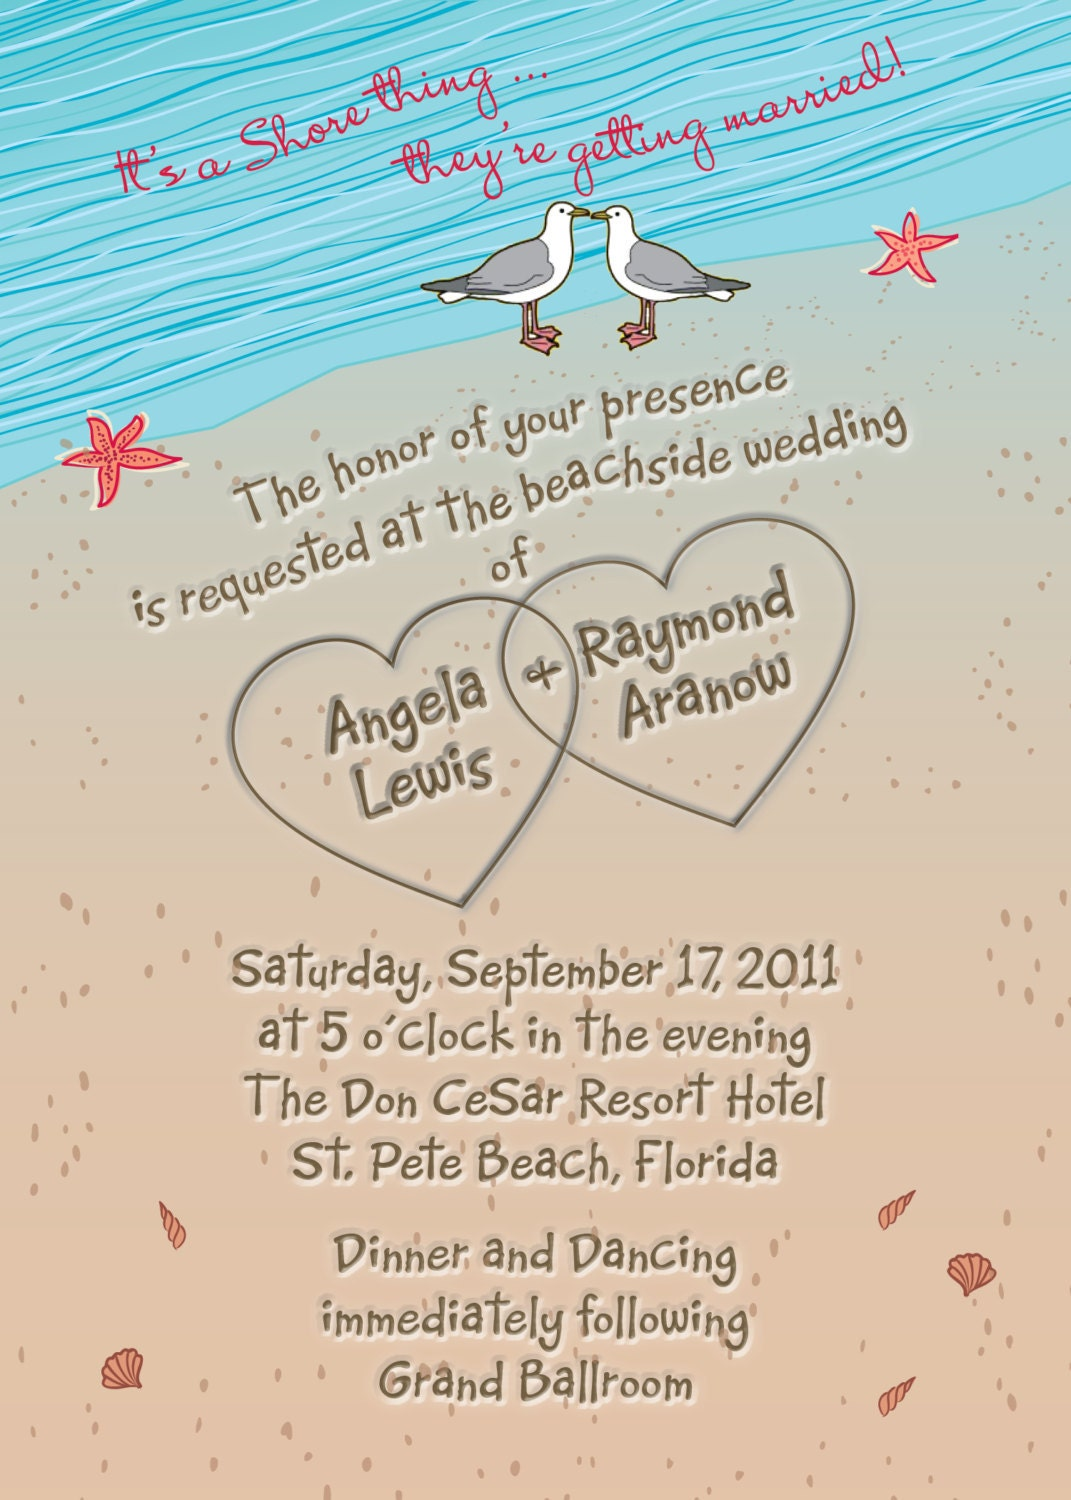 Beach Wedding Invitation With Hearts In Sand Seagulls And